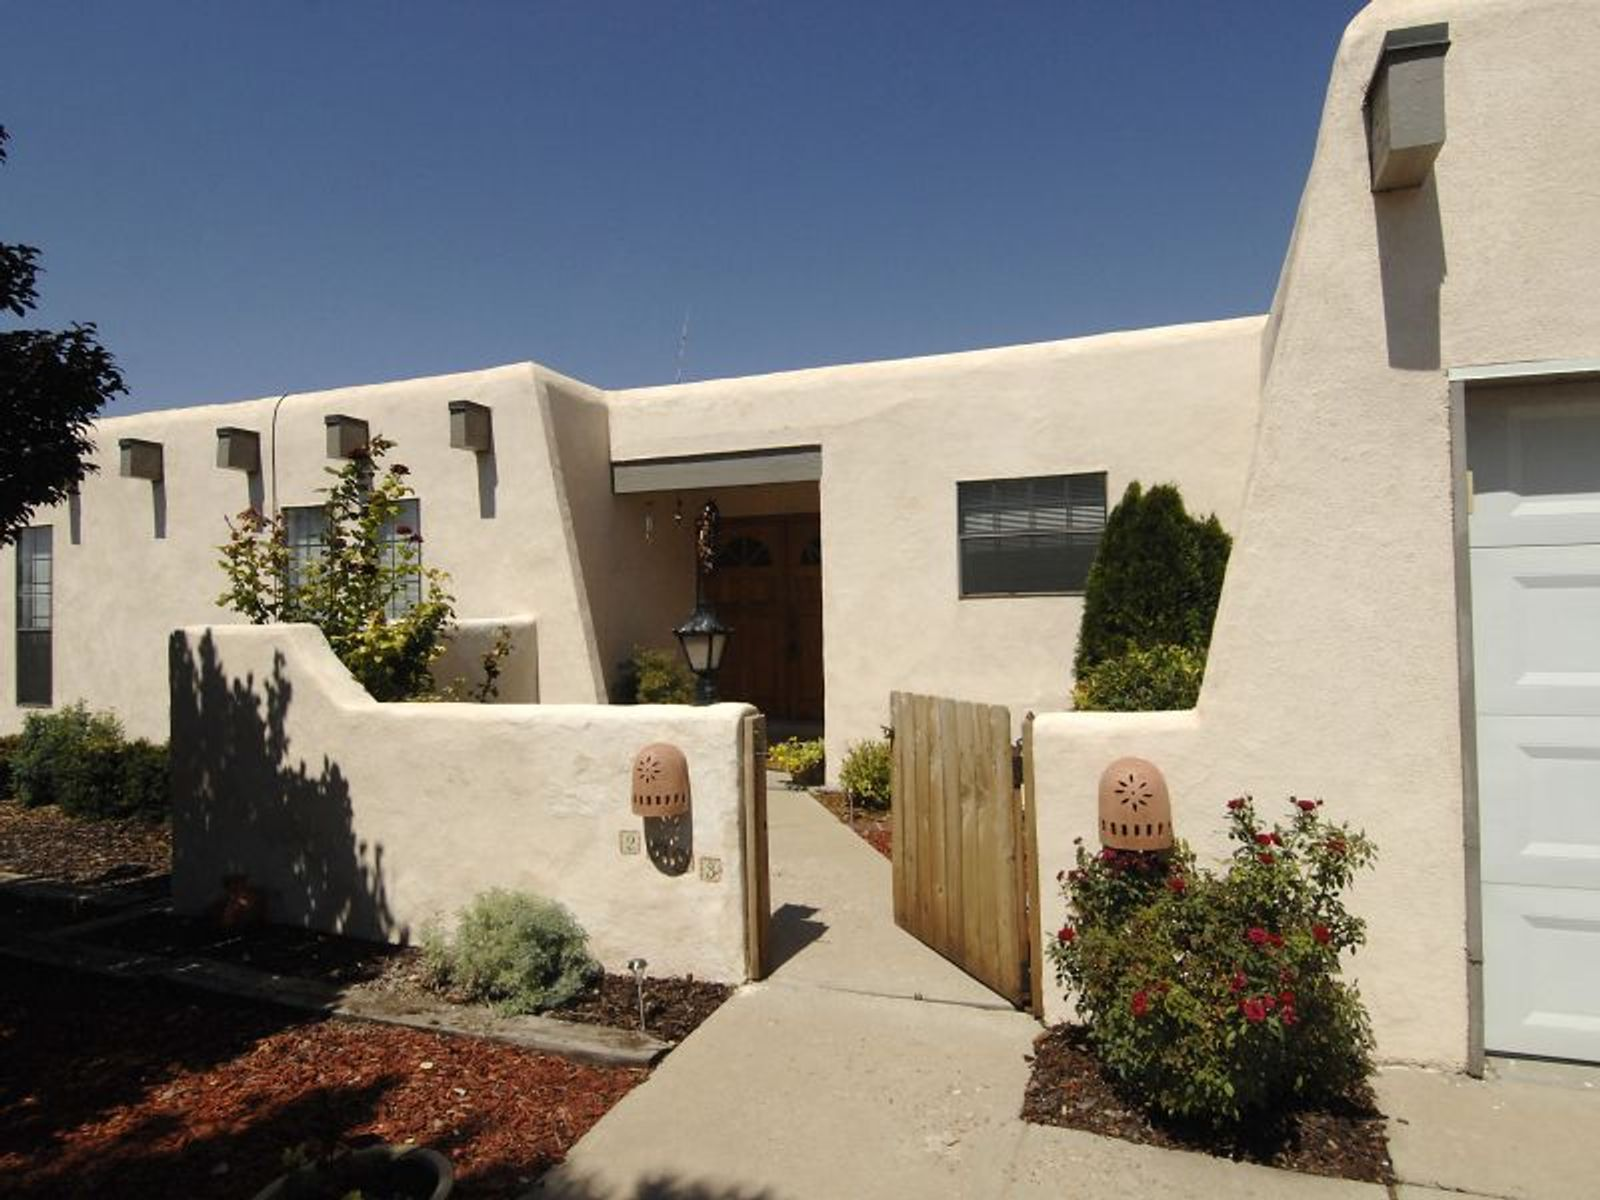 2503  Camino De Vida, Santa Fe NM Single Family Home - Santa Fe Real Estate